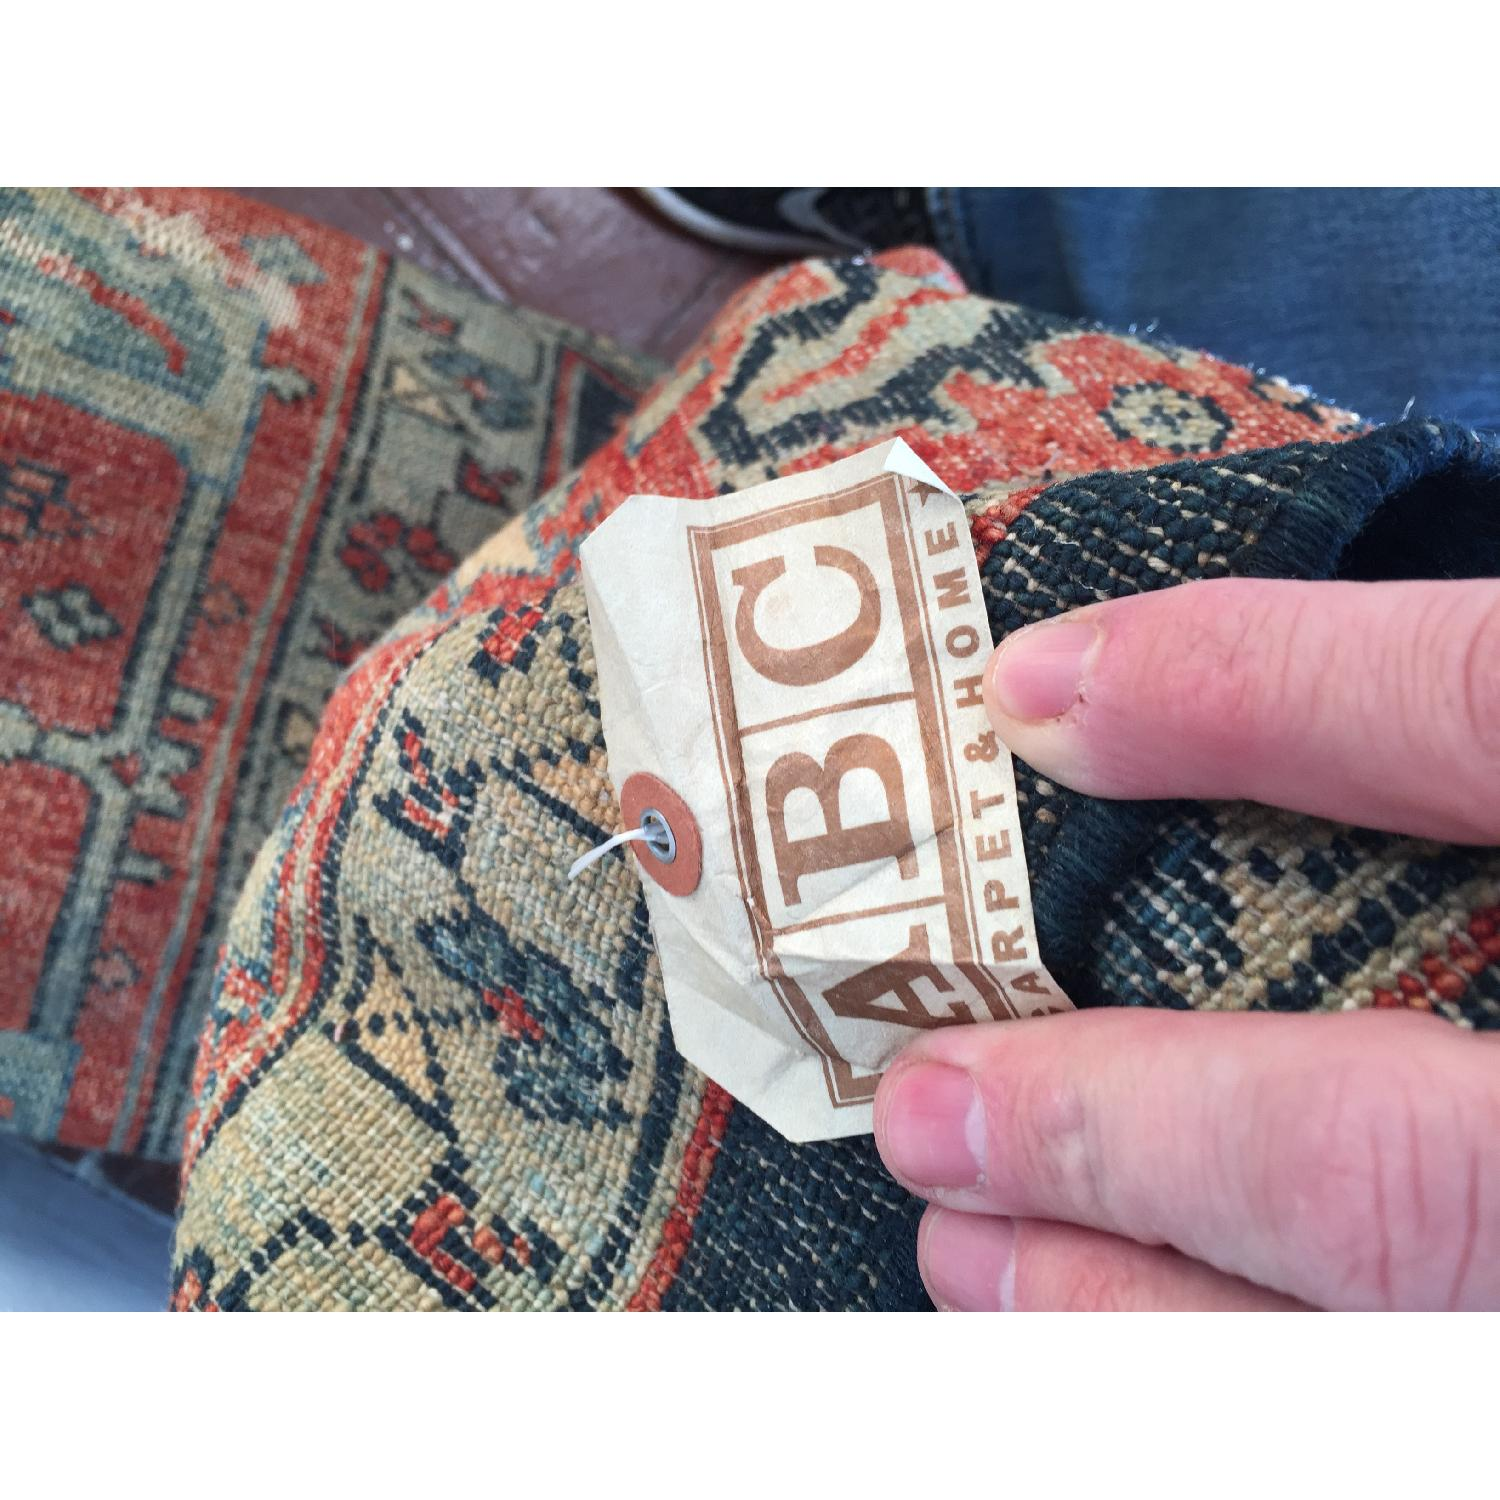 ABC Carpet & Home Woven Legends Turkish Rug - image-1